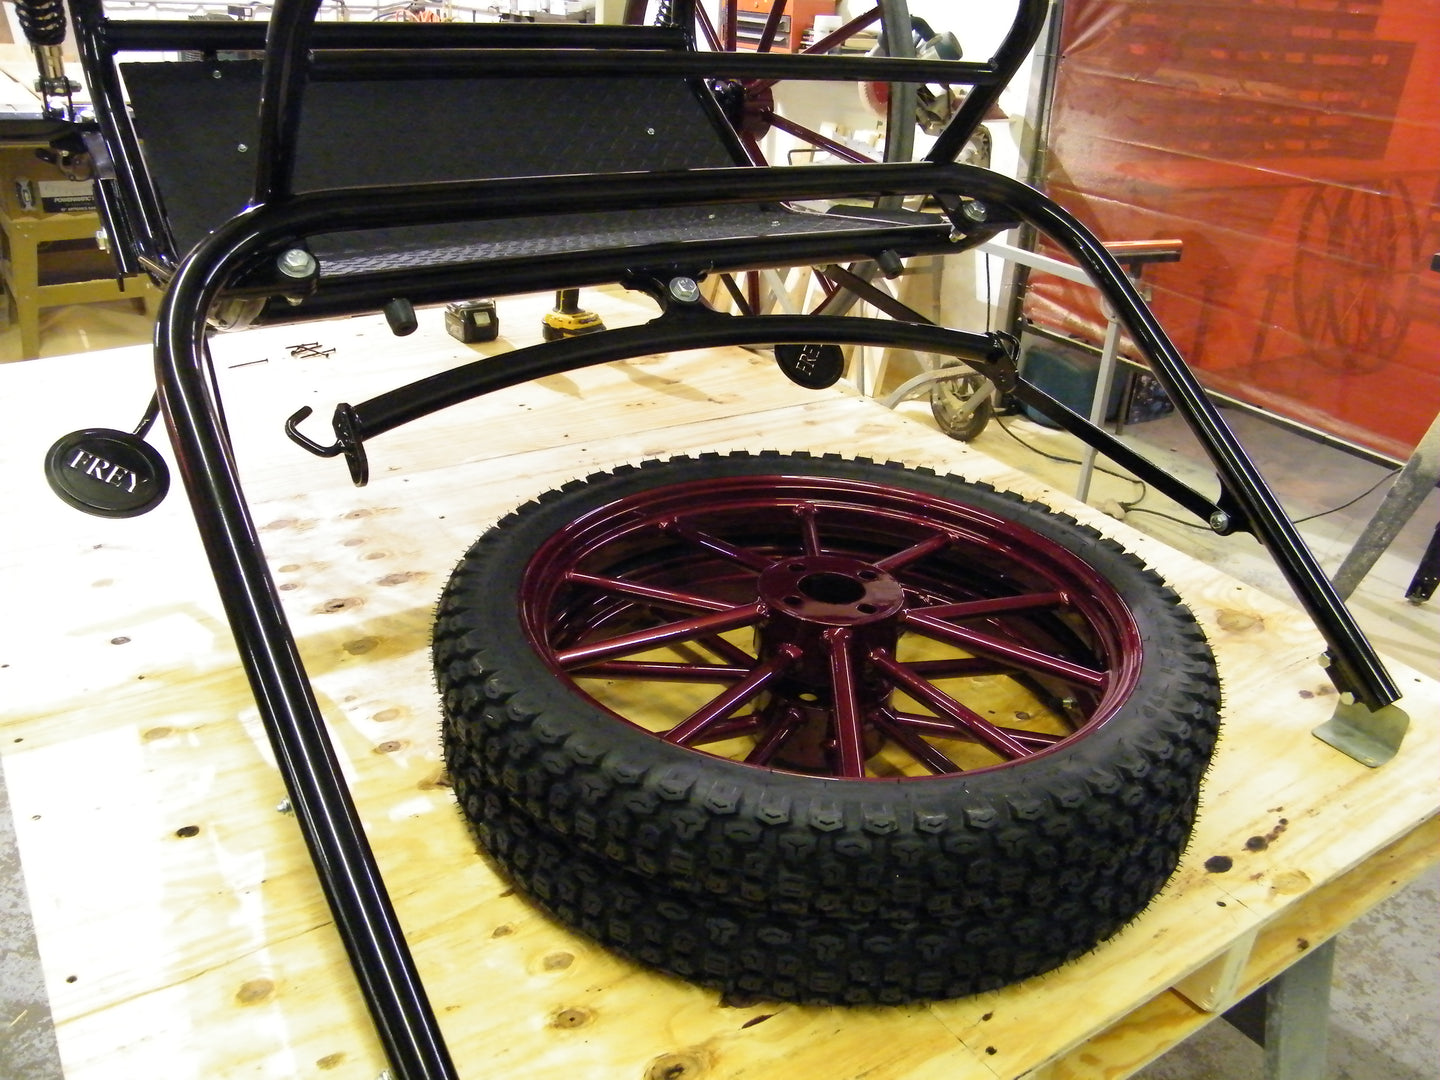 Wheels, Parts and Components